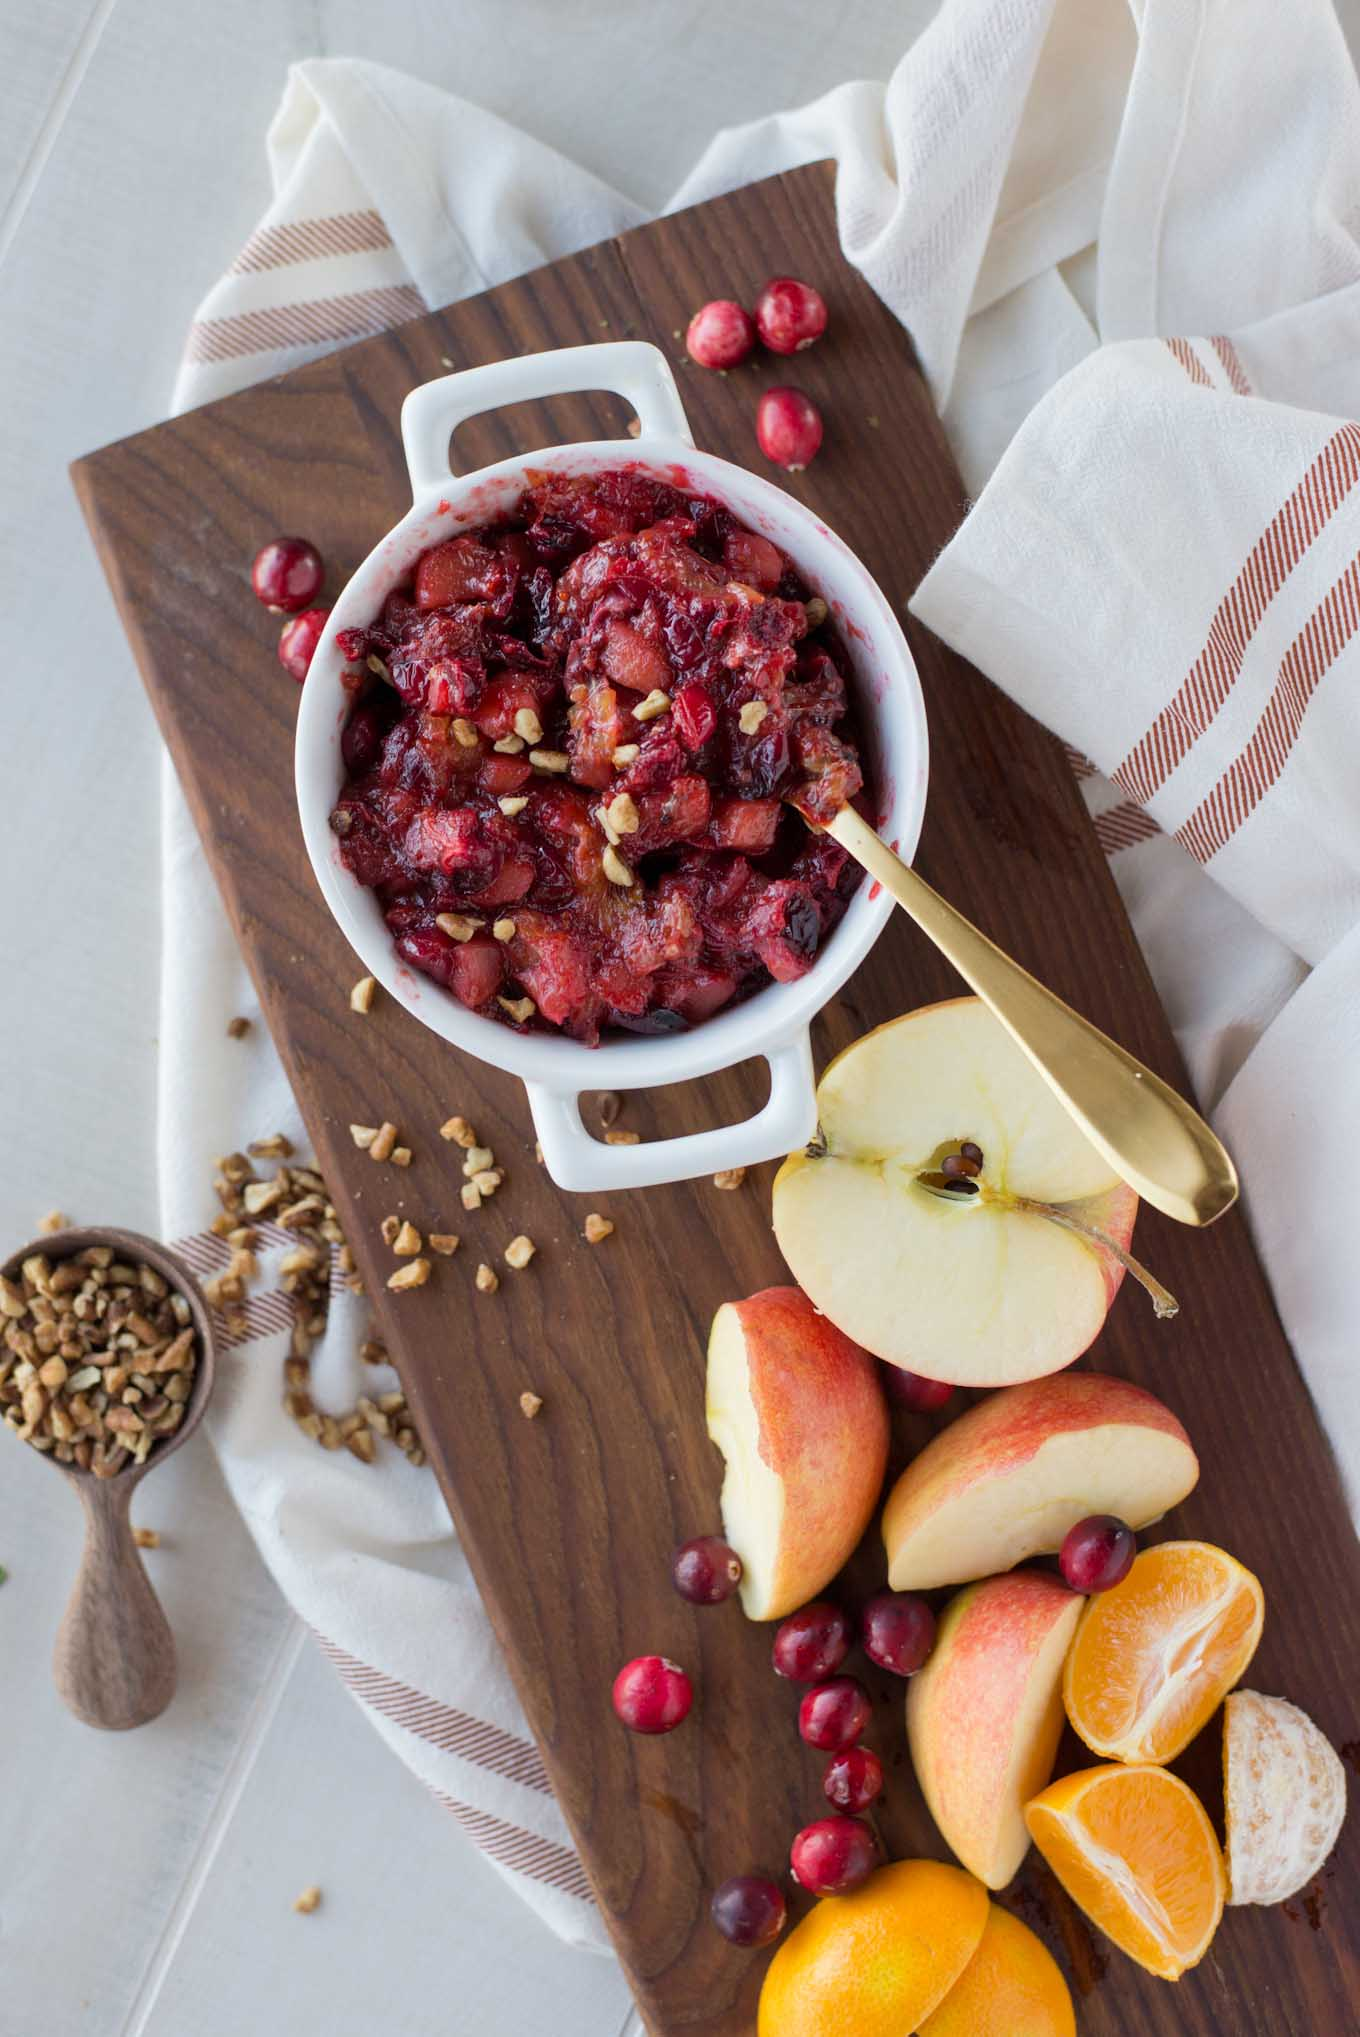 Delicious cranberry sauce, because cranberry sauce really can be delicious in under 20 minutes.